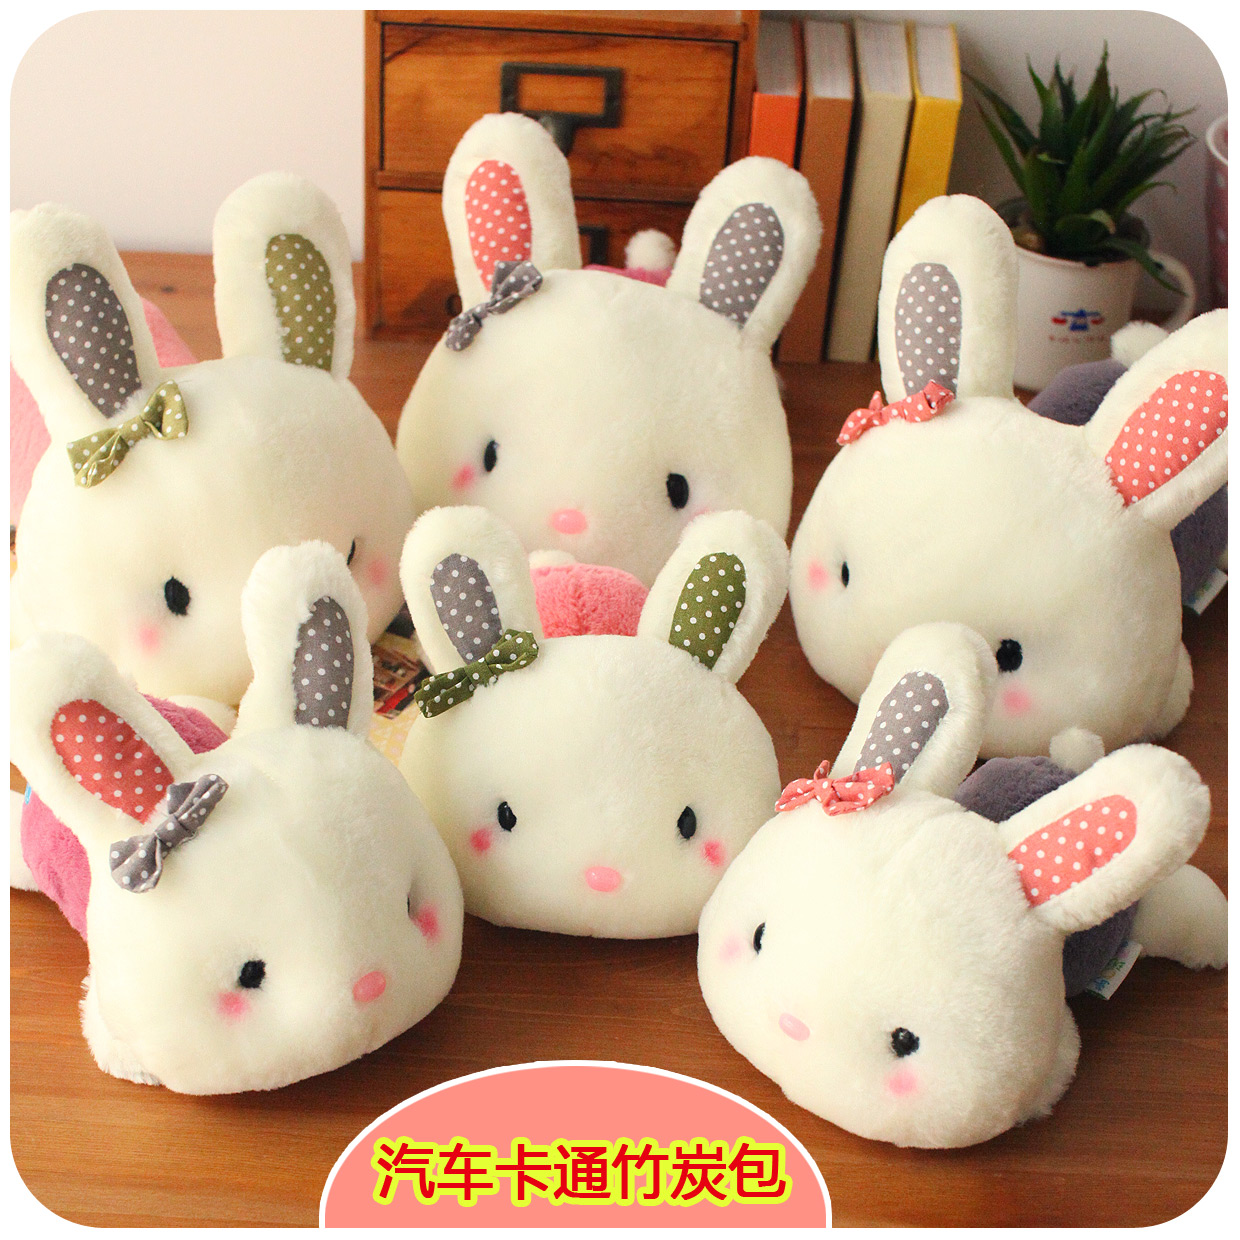 2014 Rushed Hot Sale Perfumes And Fragrances for Women Car Bamboo Charcoal Bag Cartoon Rabbit Active Carbon Flavor Dolls Doll(China (Mainland))